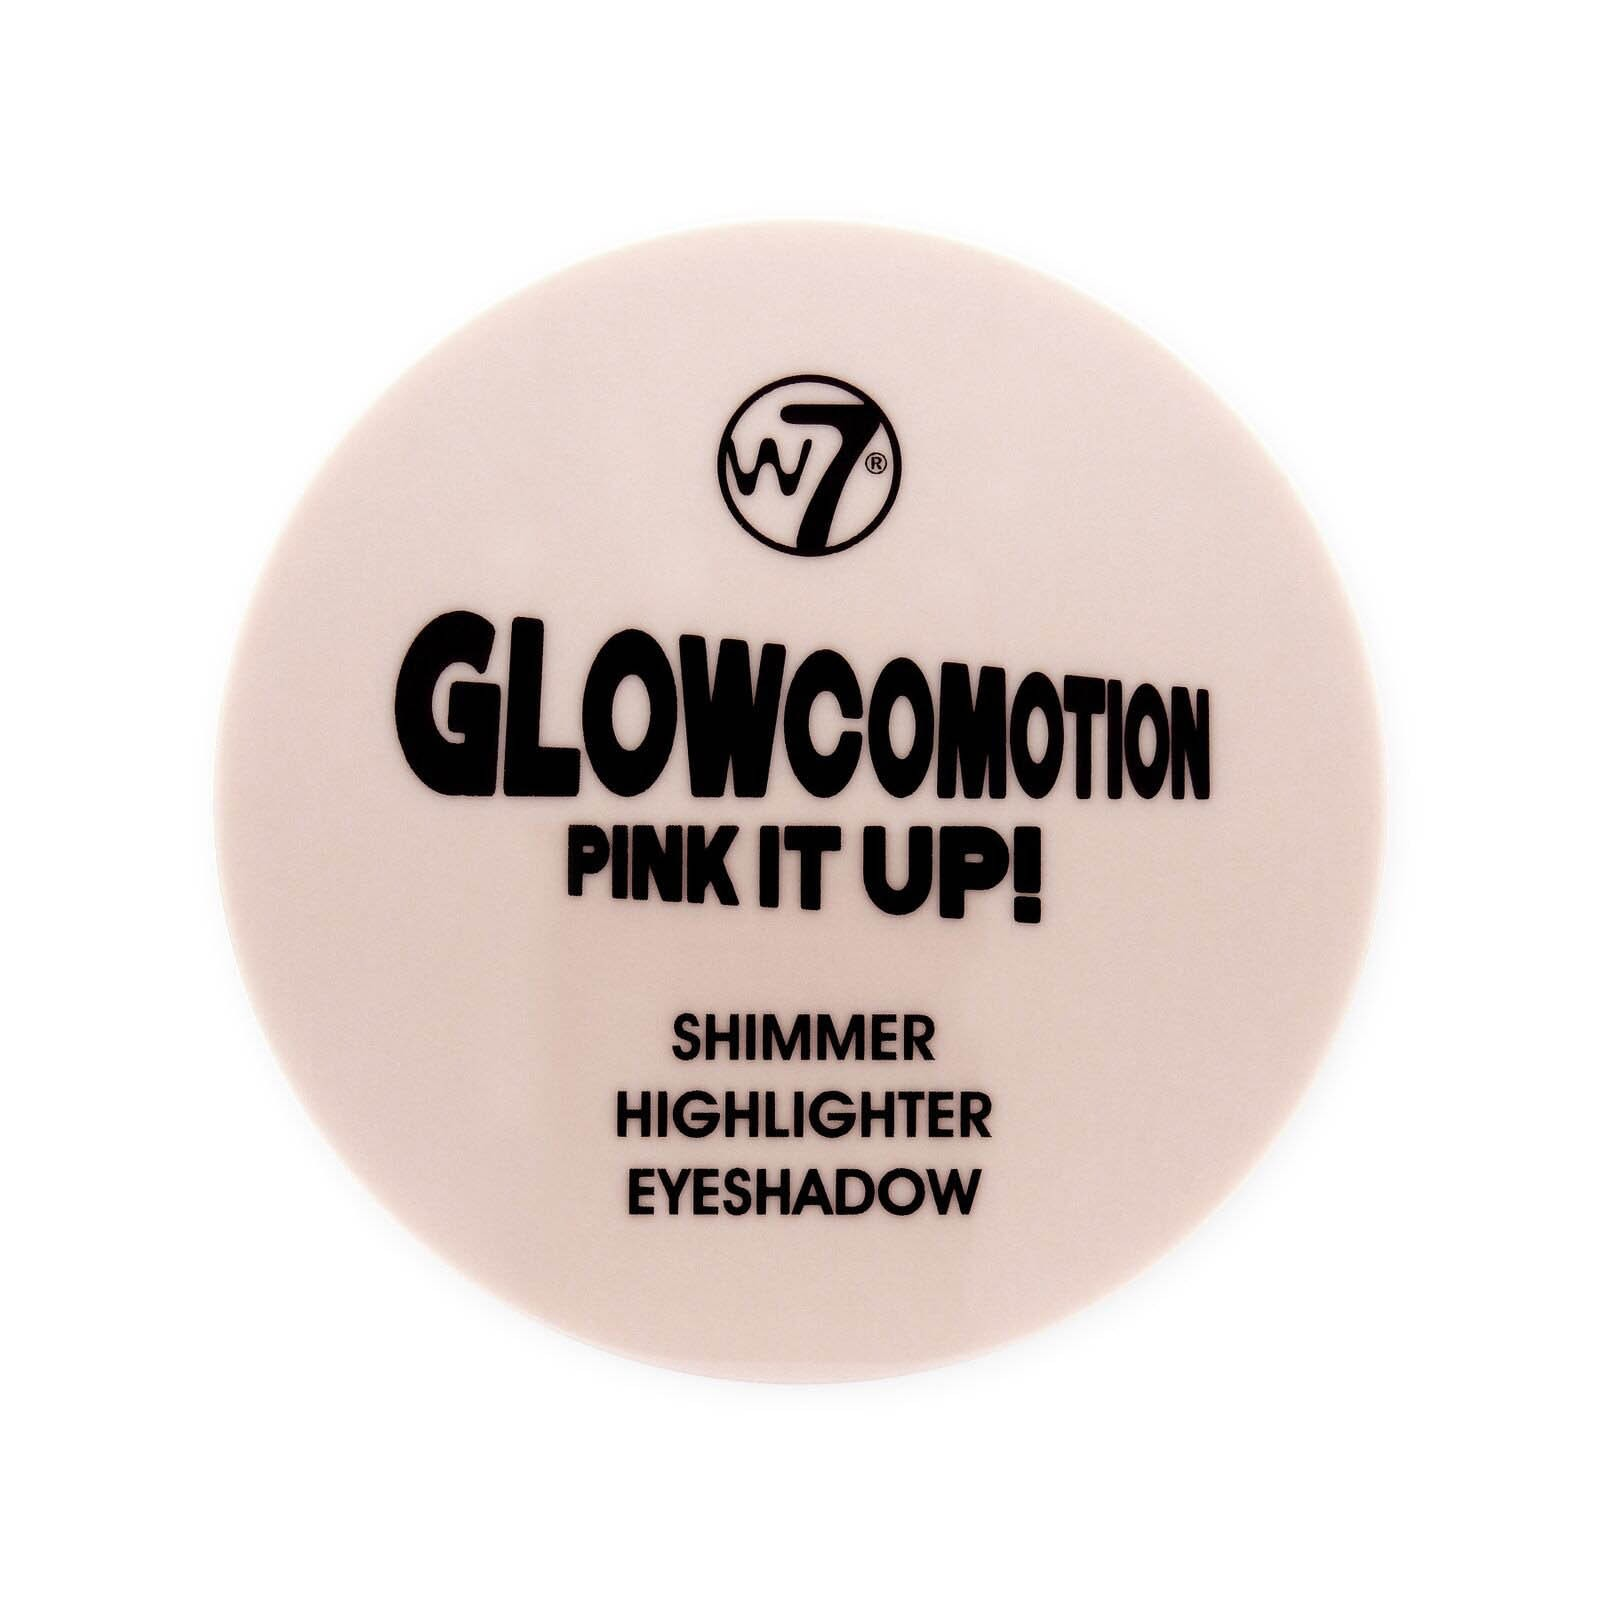 Highlighter & Lidschatten - Glowcomotion